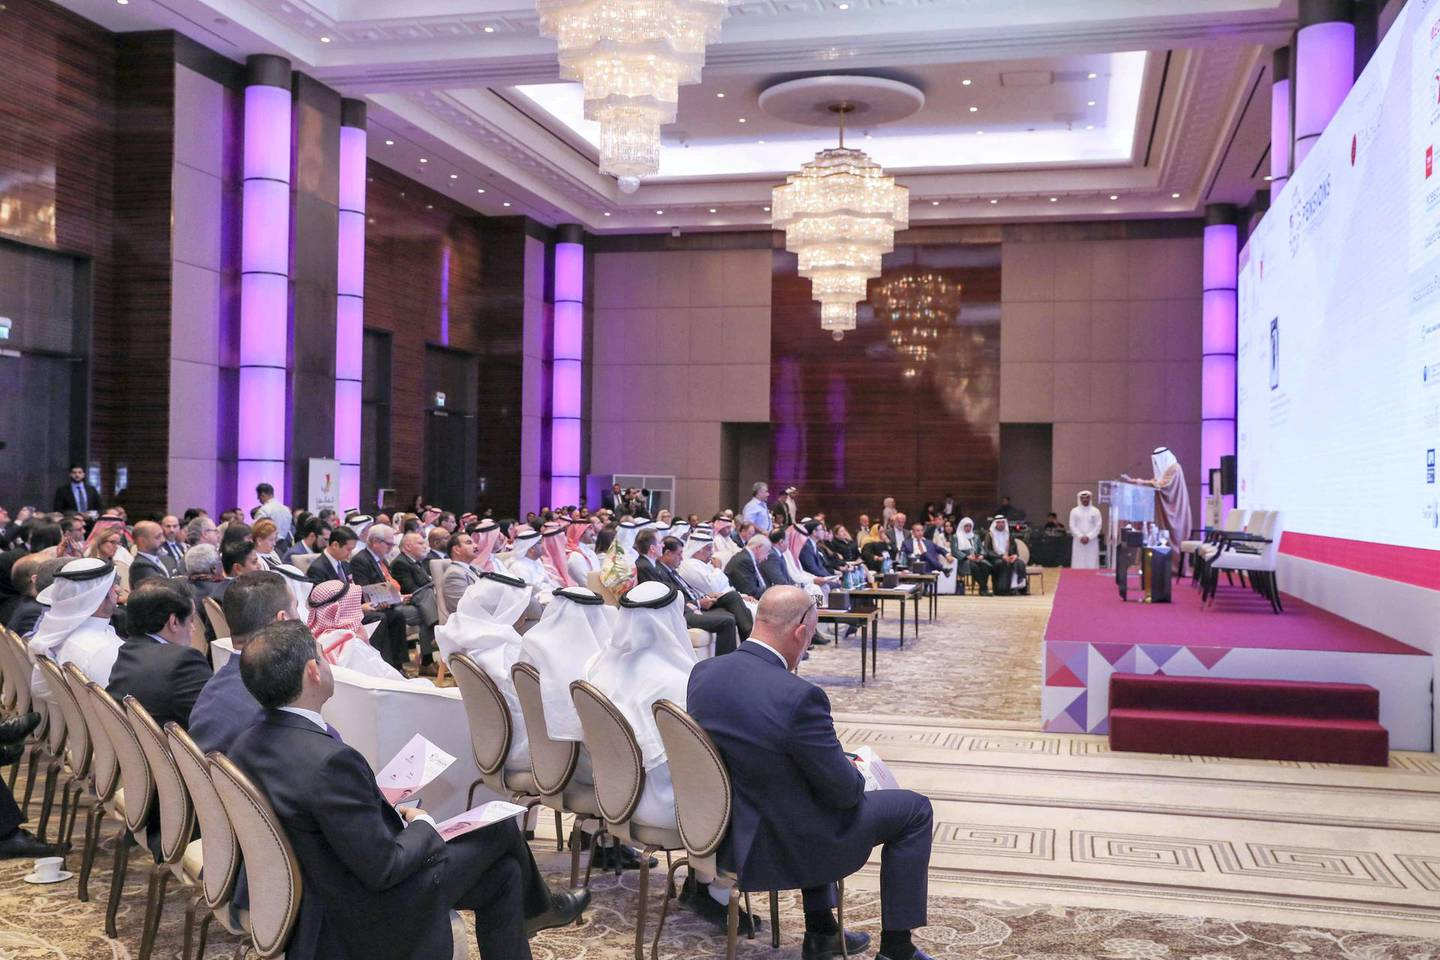 Delegates at the Mena Pensions Conference in Bahrain. Courtesy Takaud